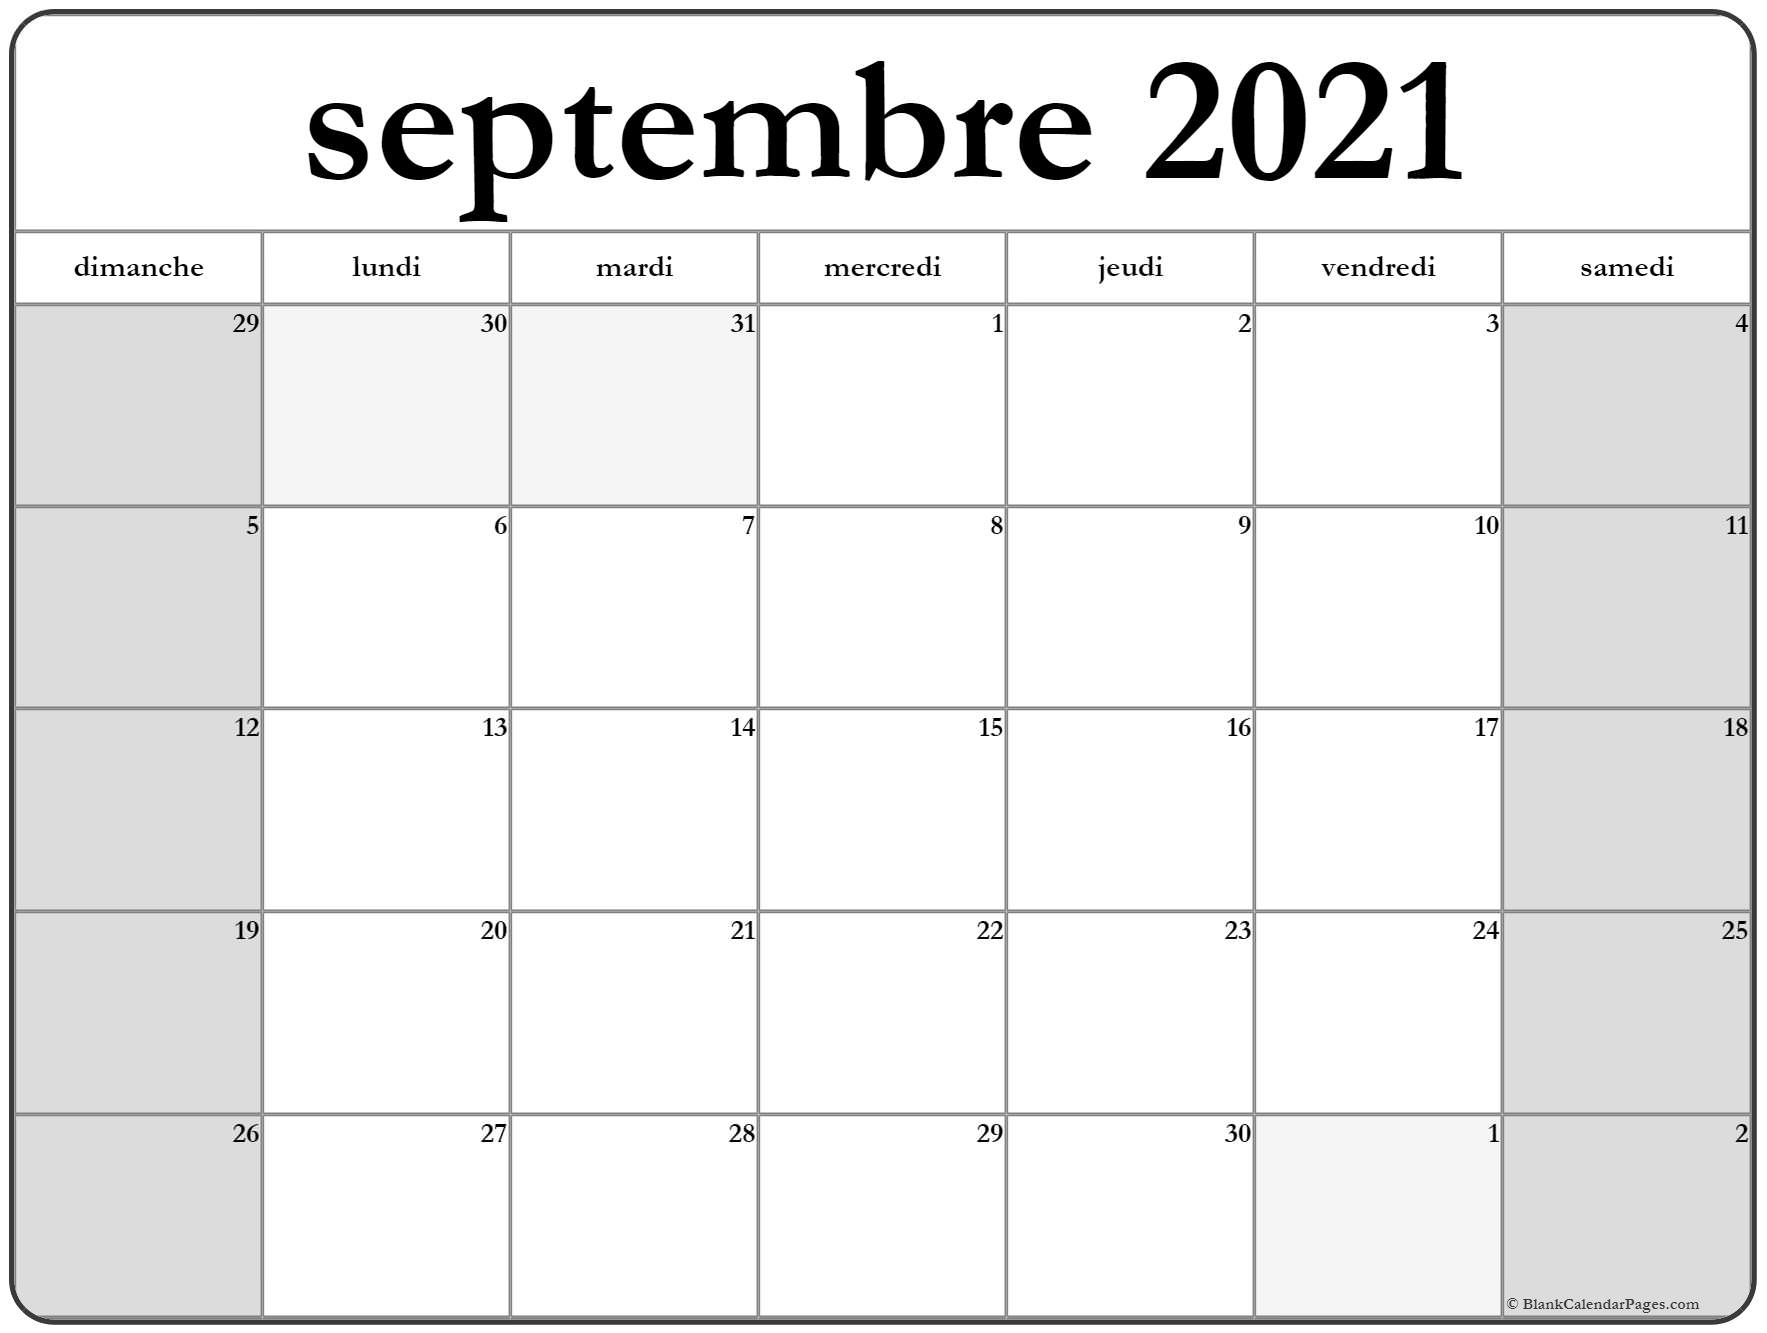 septembre 2021 calendrier imprimable